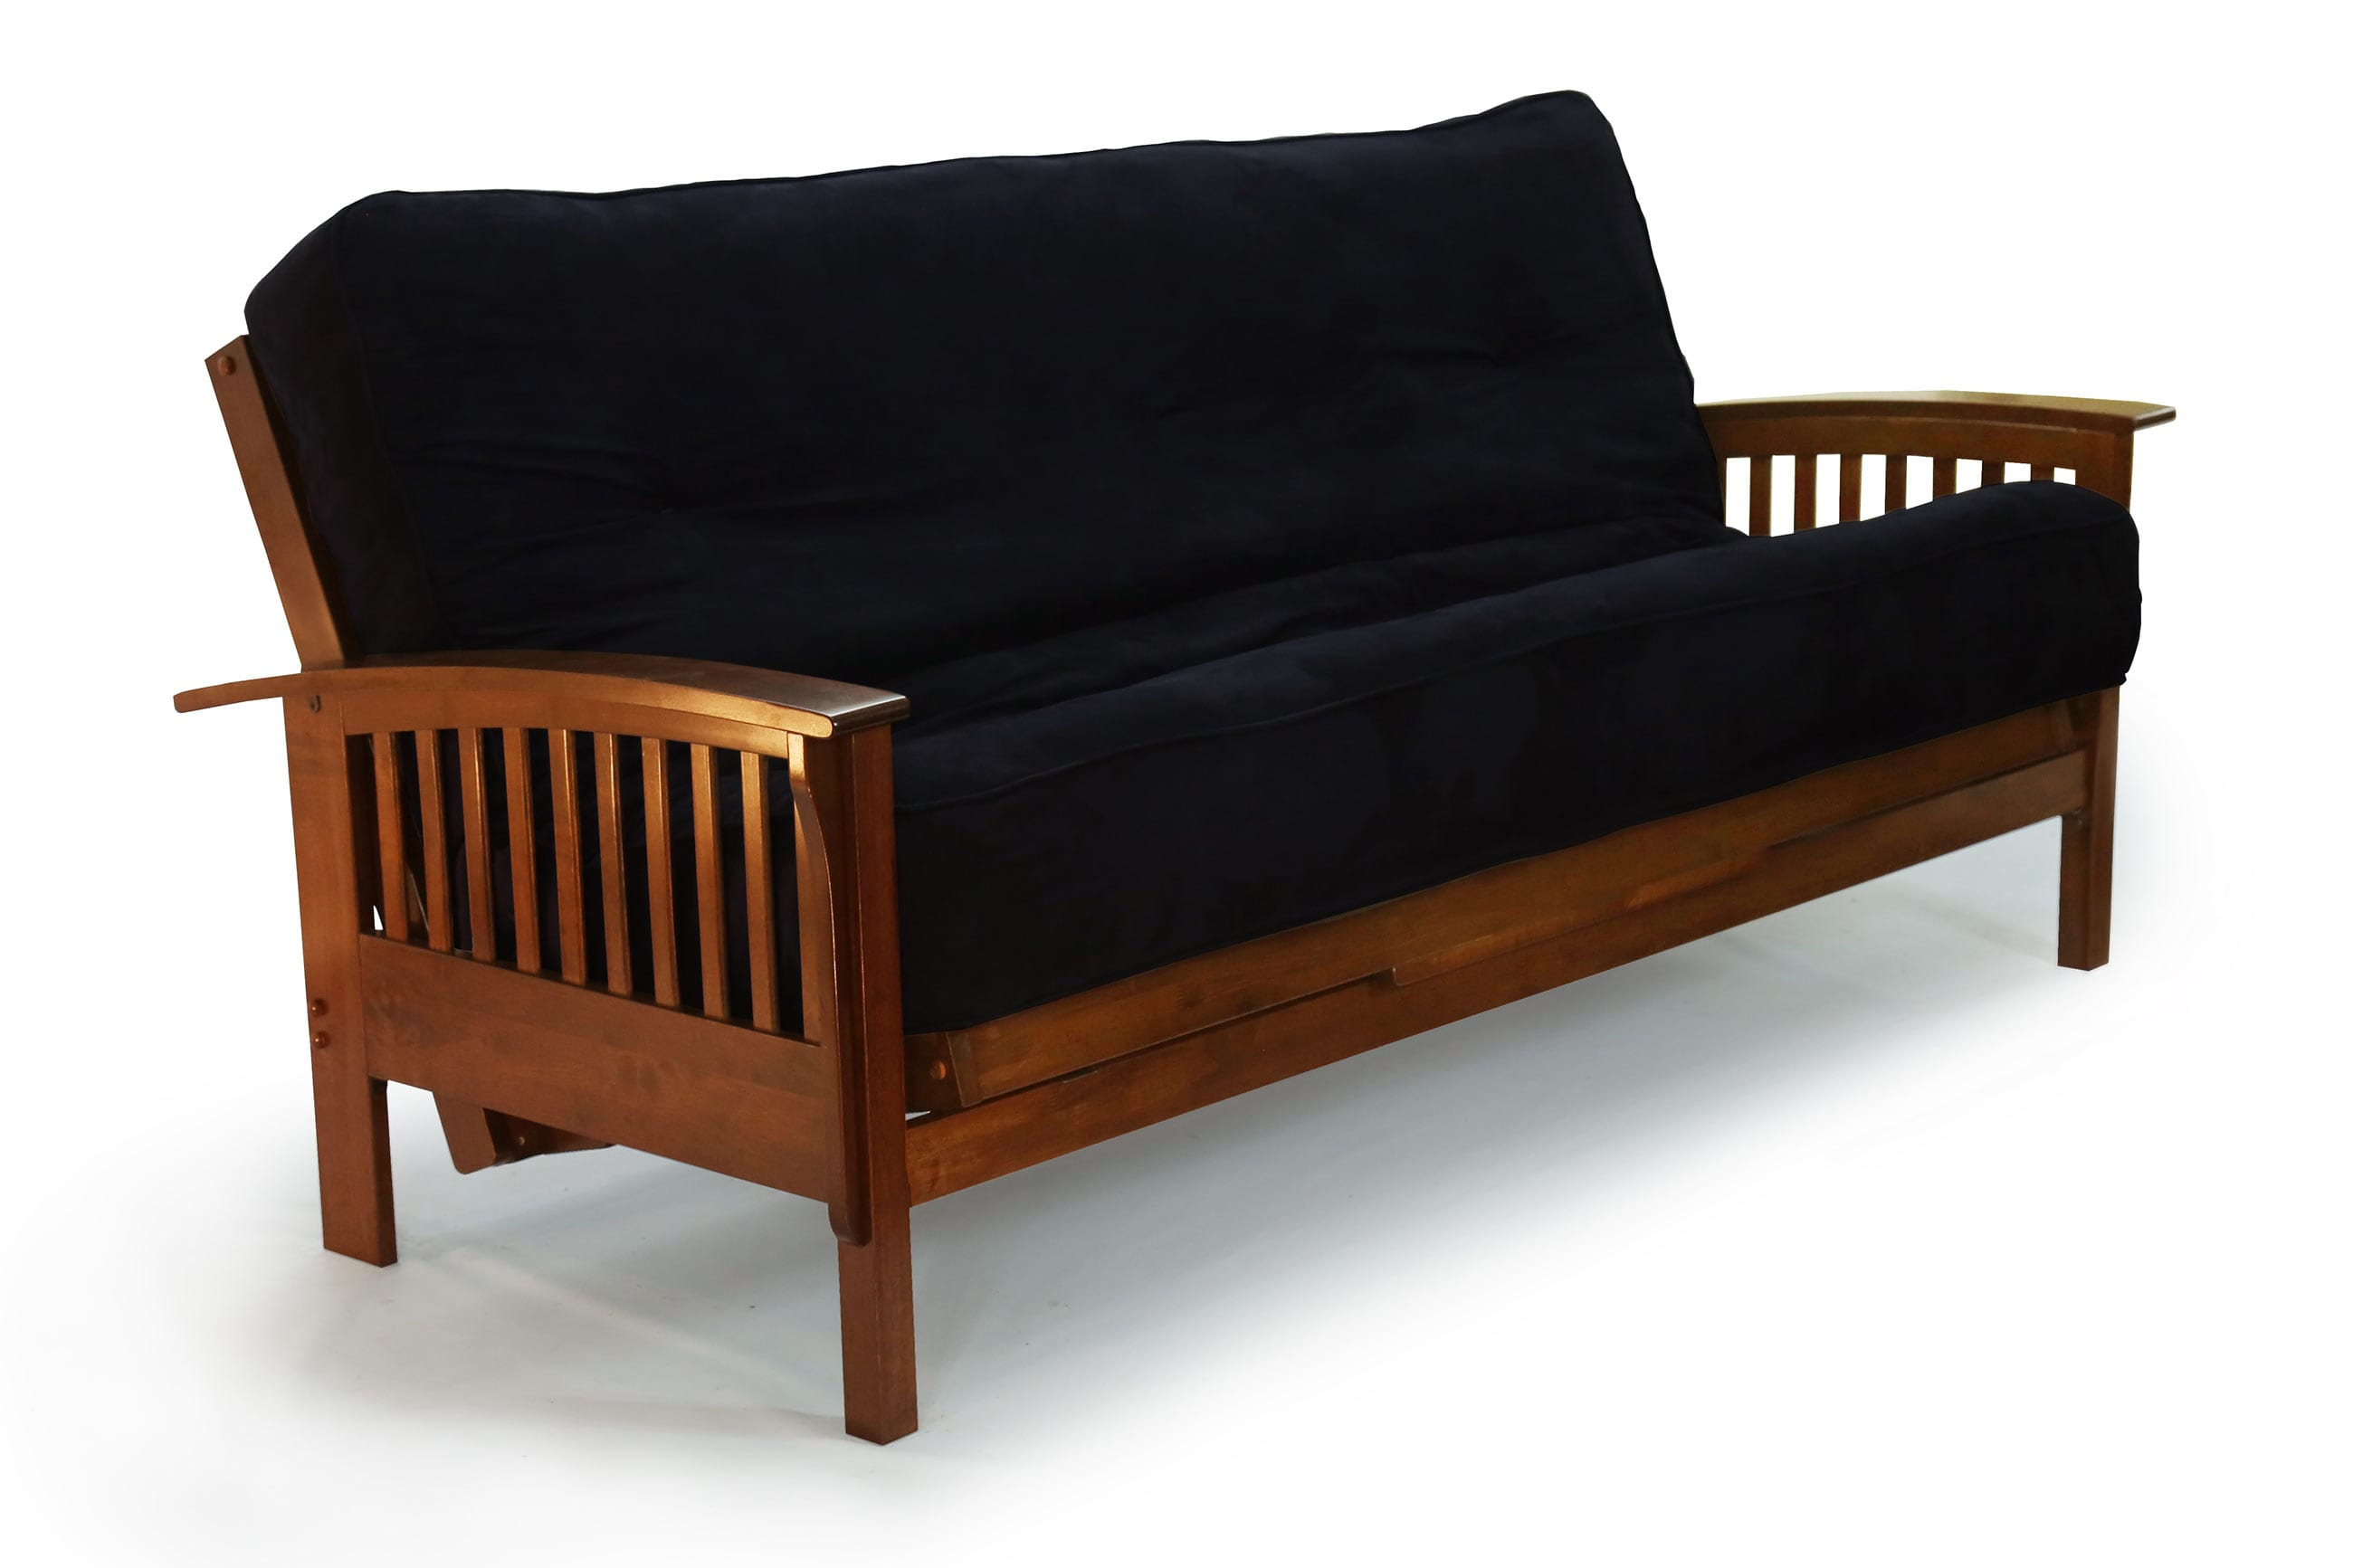 Incredible Winchester Futon Frame By Nightday Furniture Creativecarmelina Interior Chair Design Creativecarmelinacom